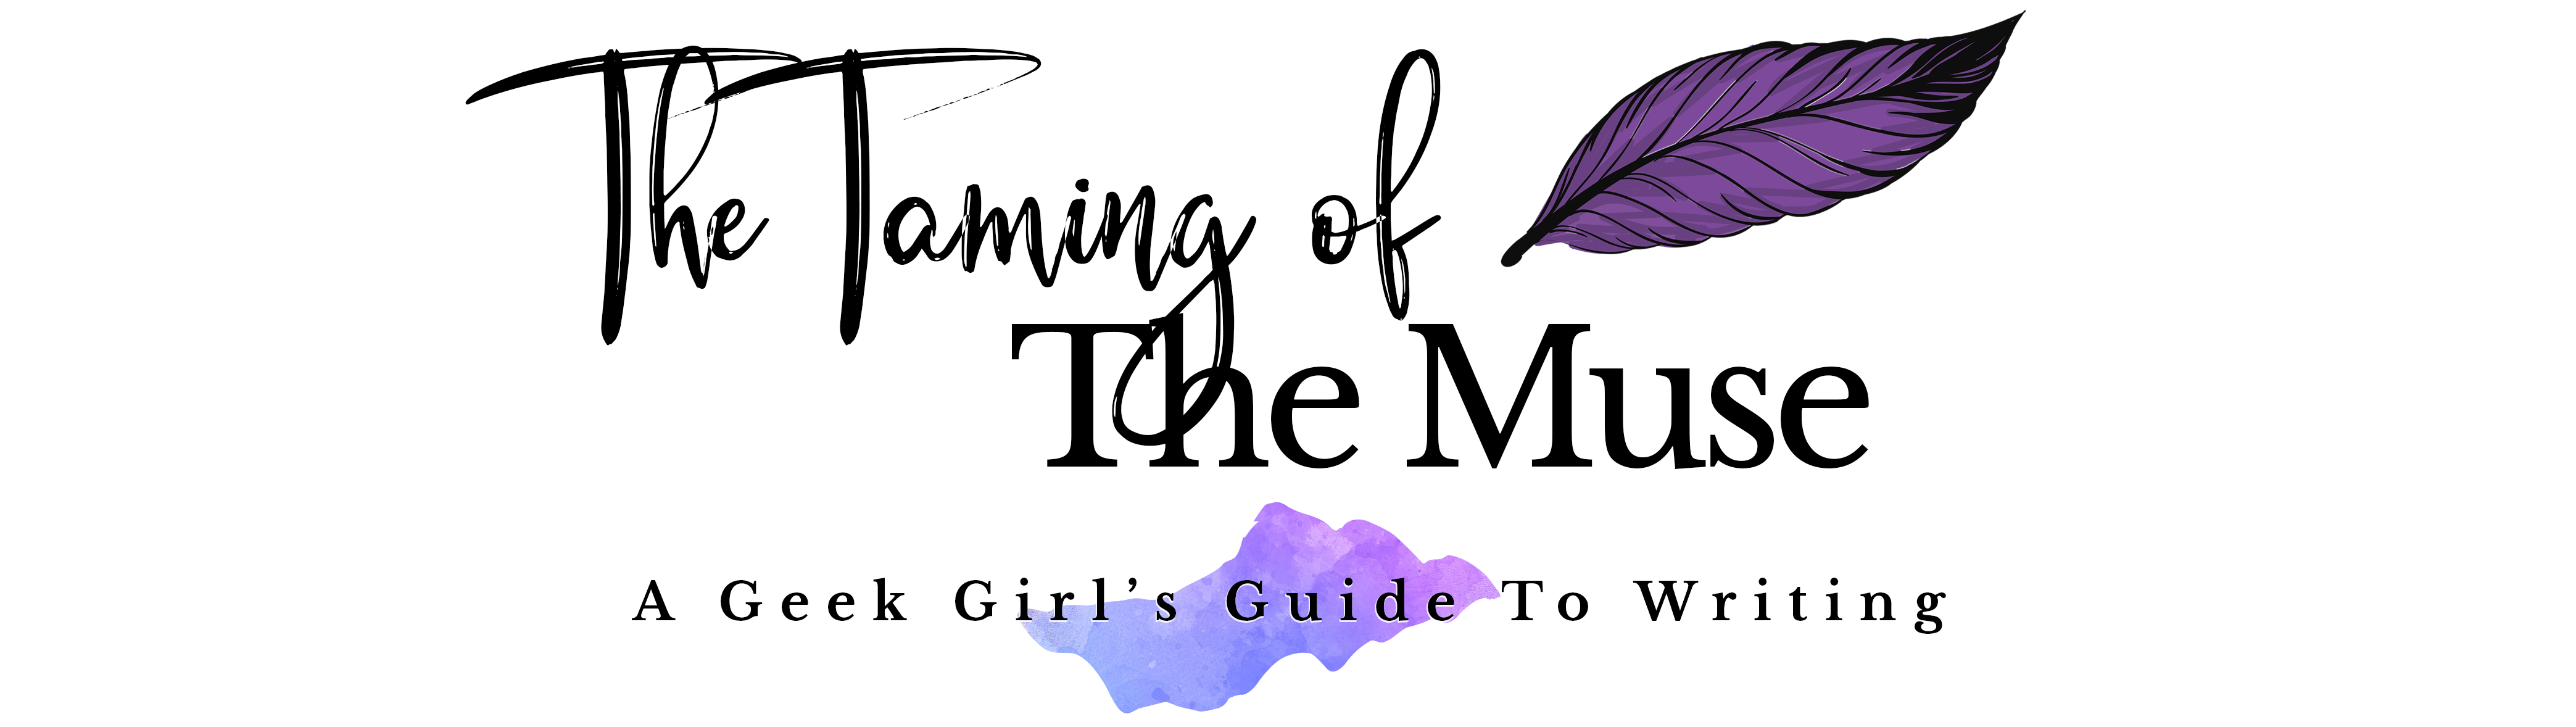 The Taming of the Muse